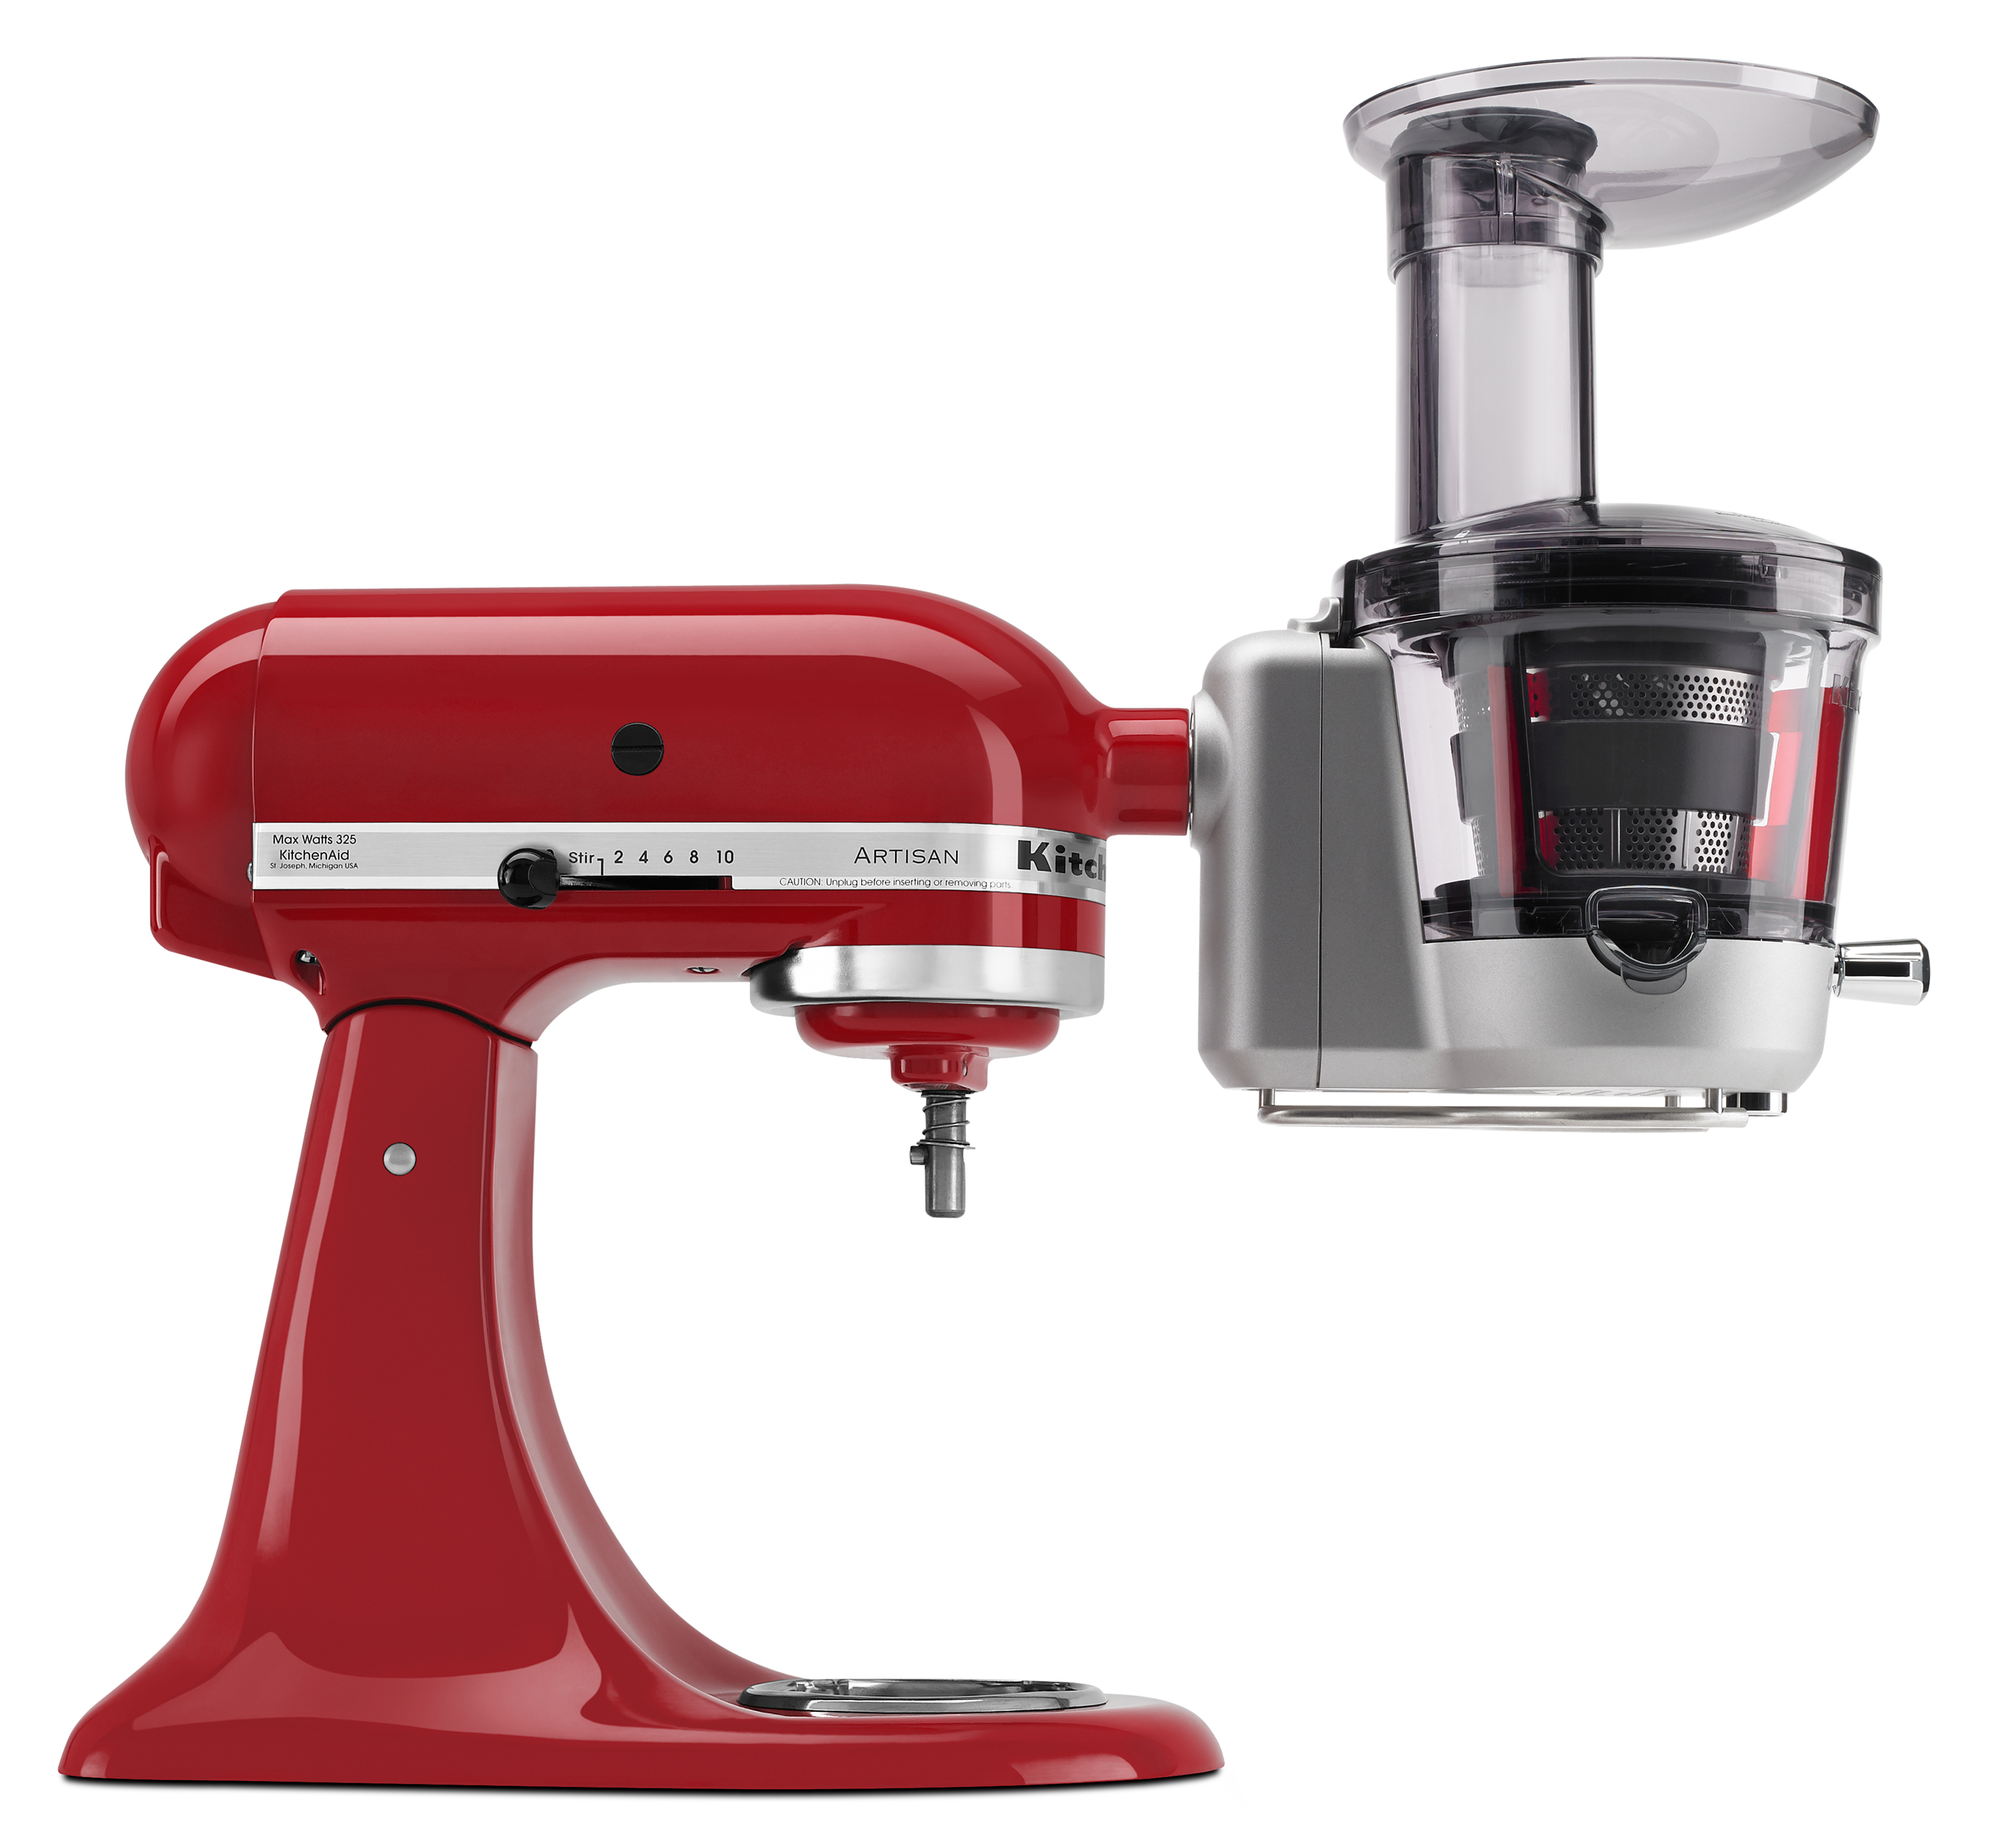 Stand mixer gifts from kitchenaid for Kitchenaid stand mixer